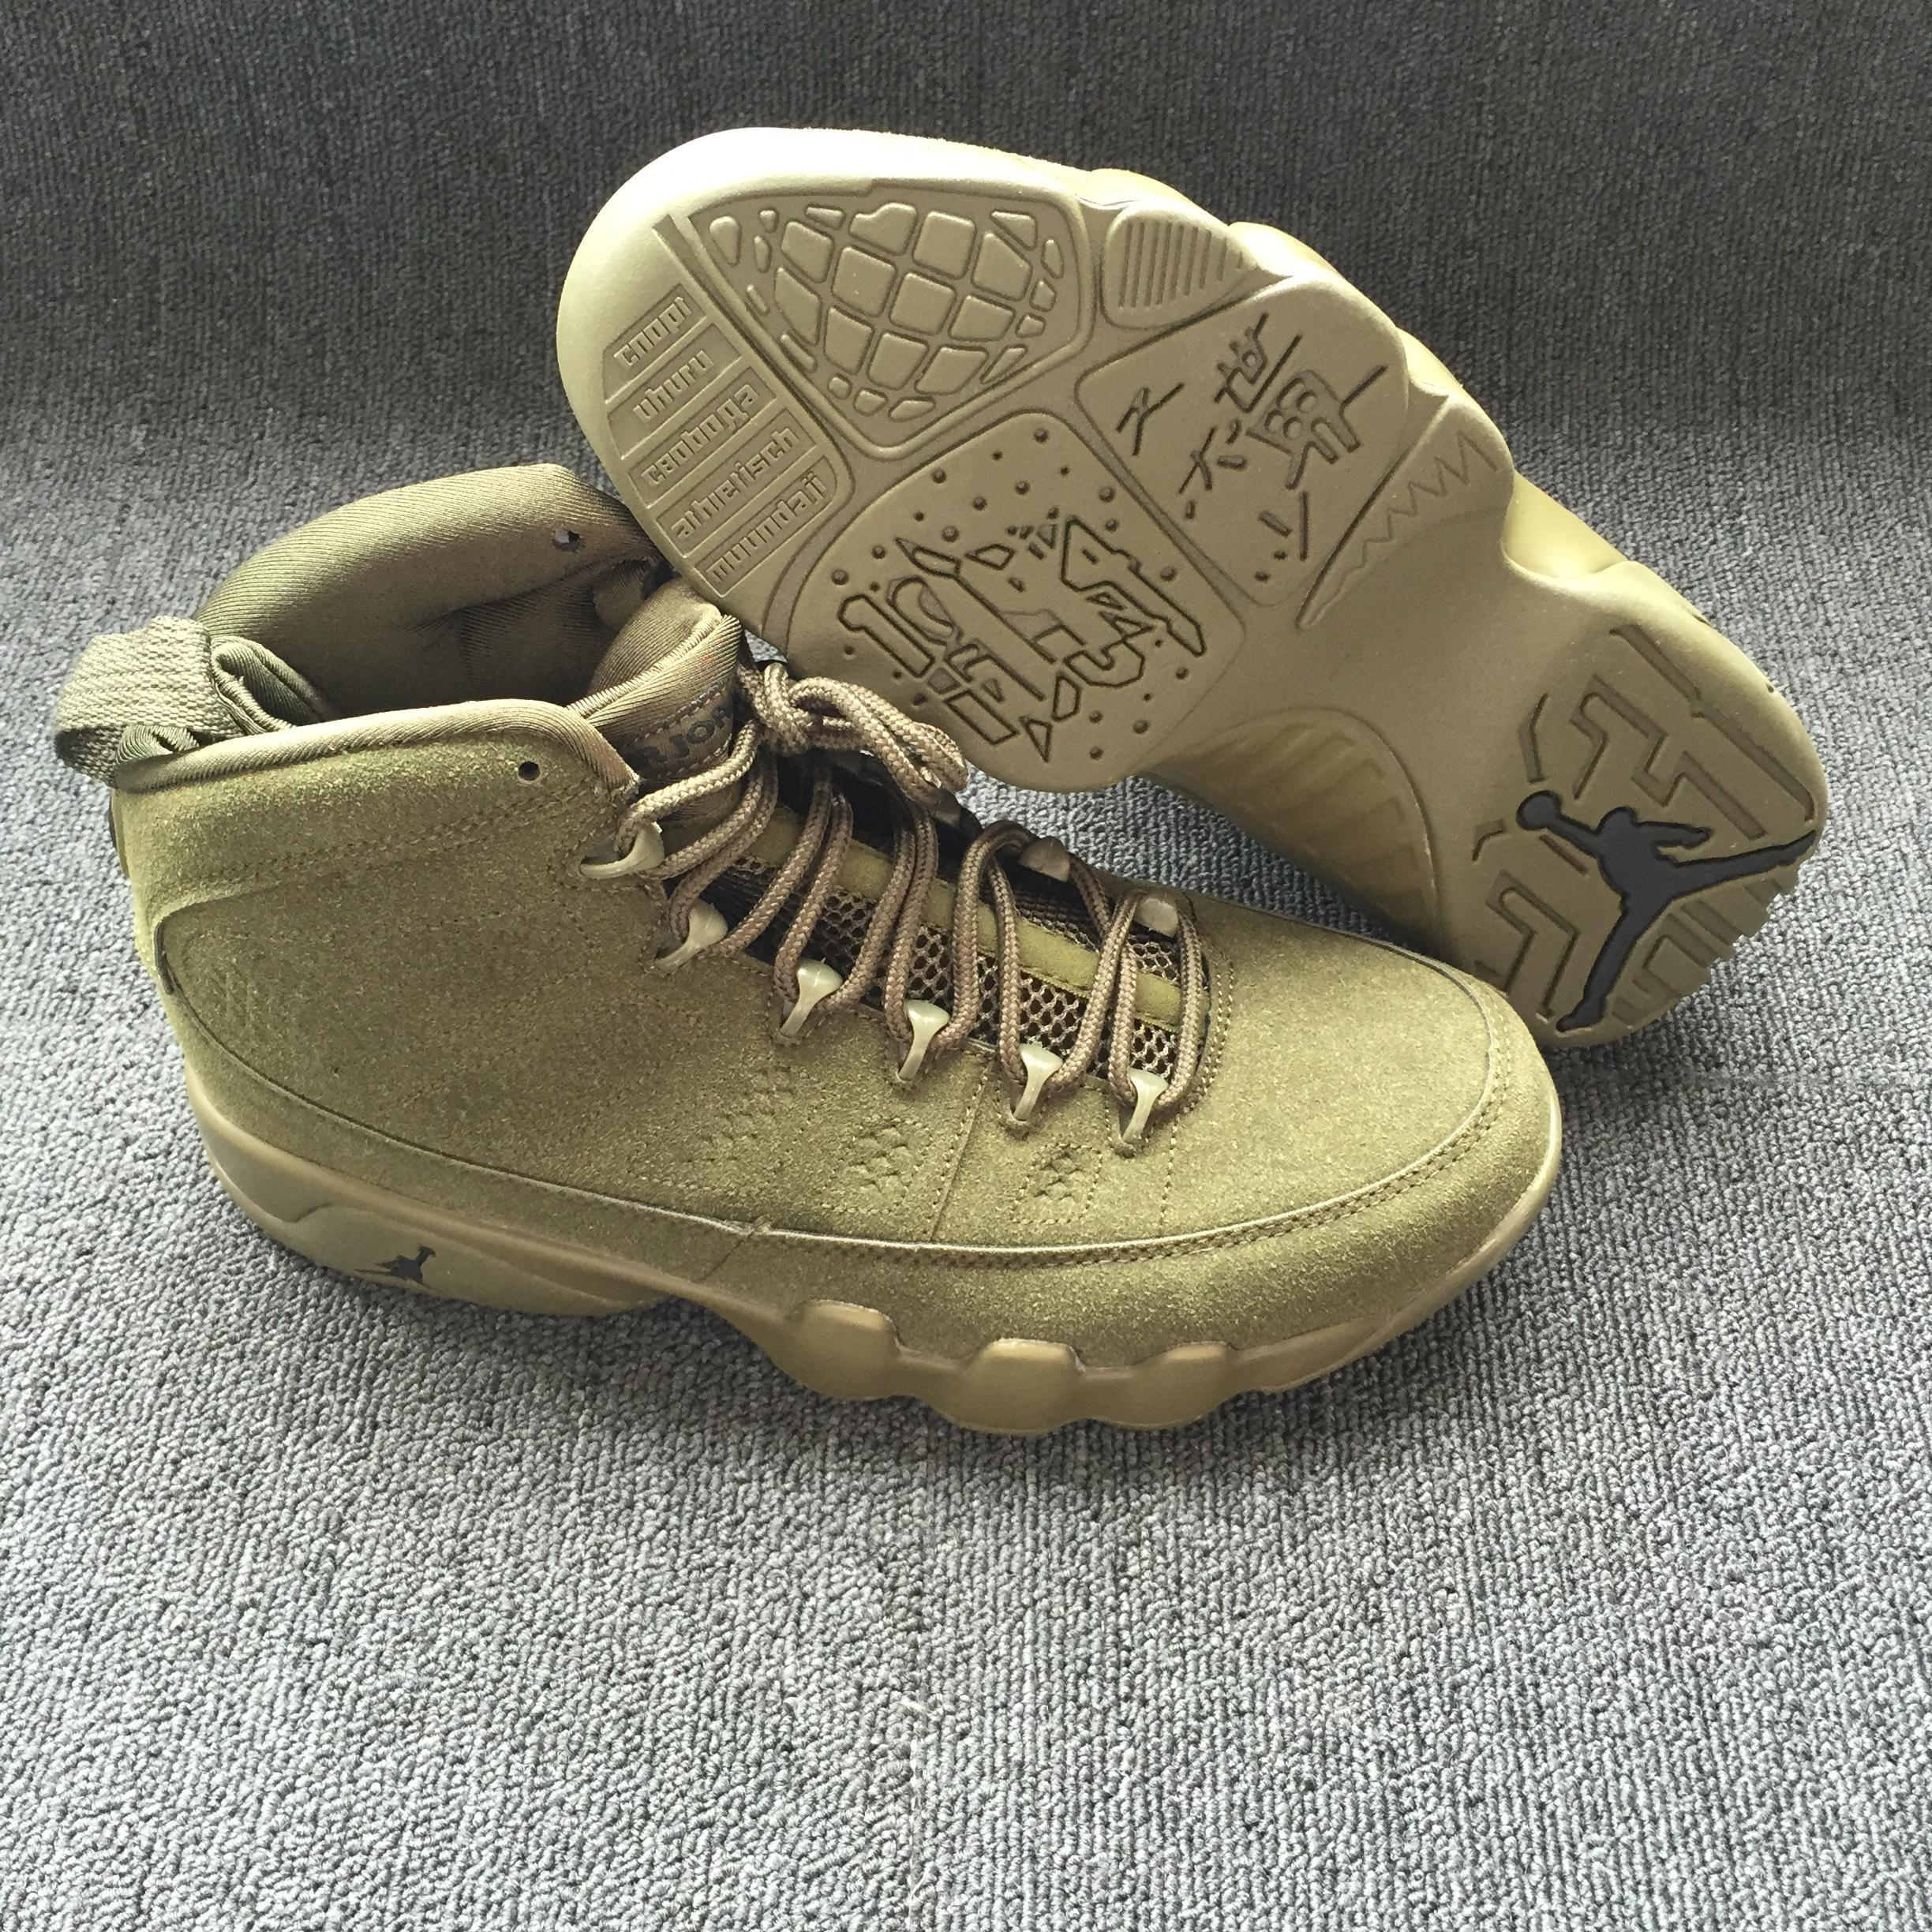 New Men Air Jordan 9 Retro Army Green